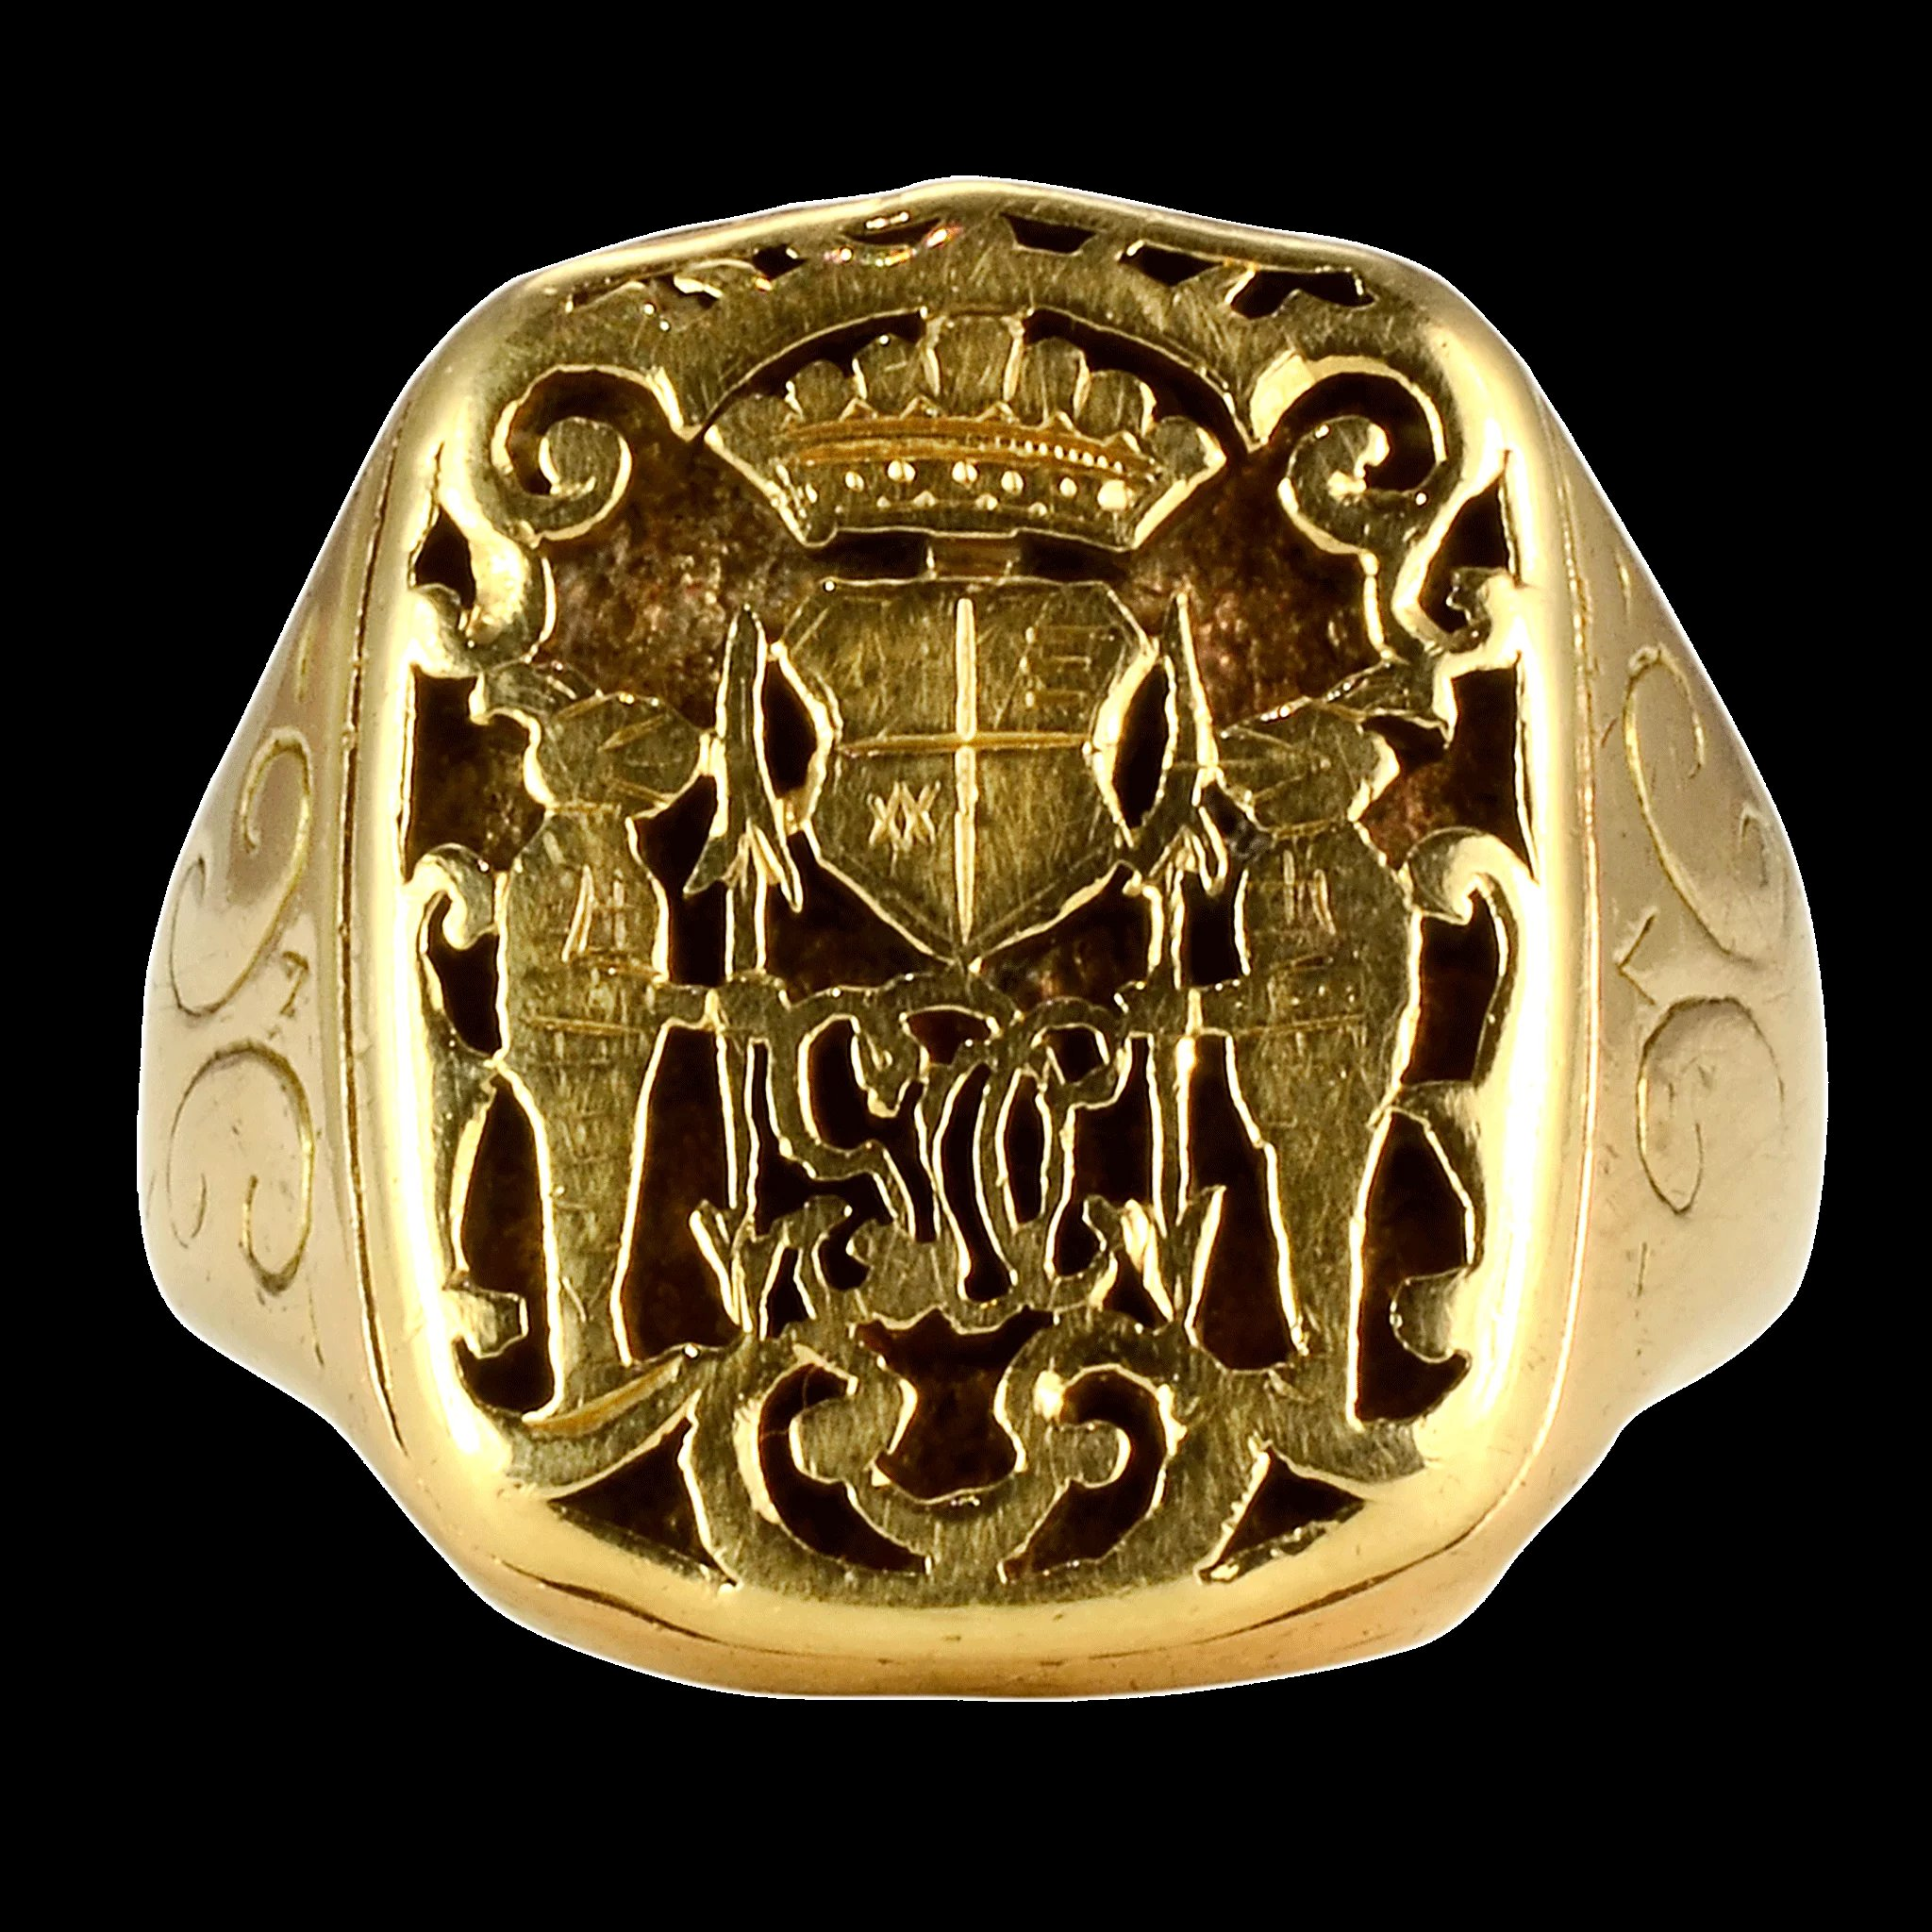 ecatalogue collections two lot rings s web auctions sotheby ring great en crest scottish